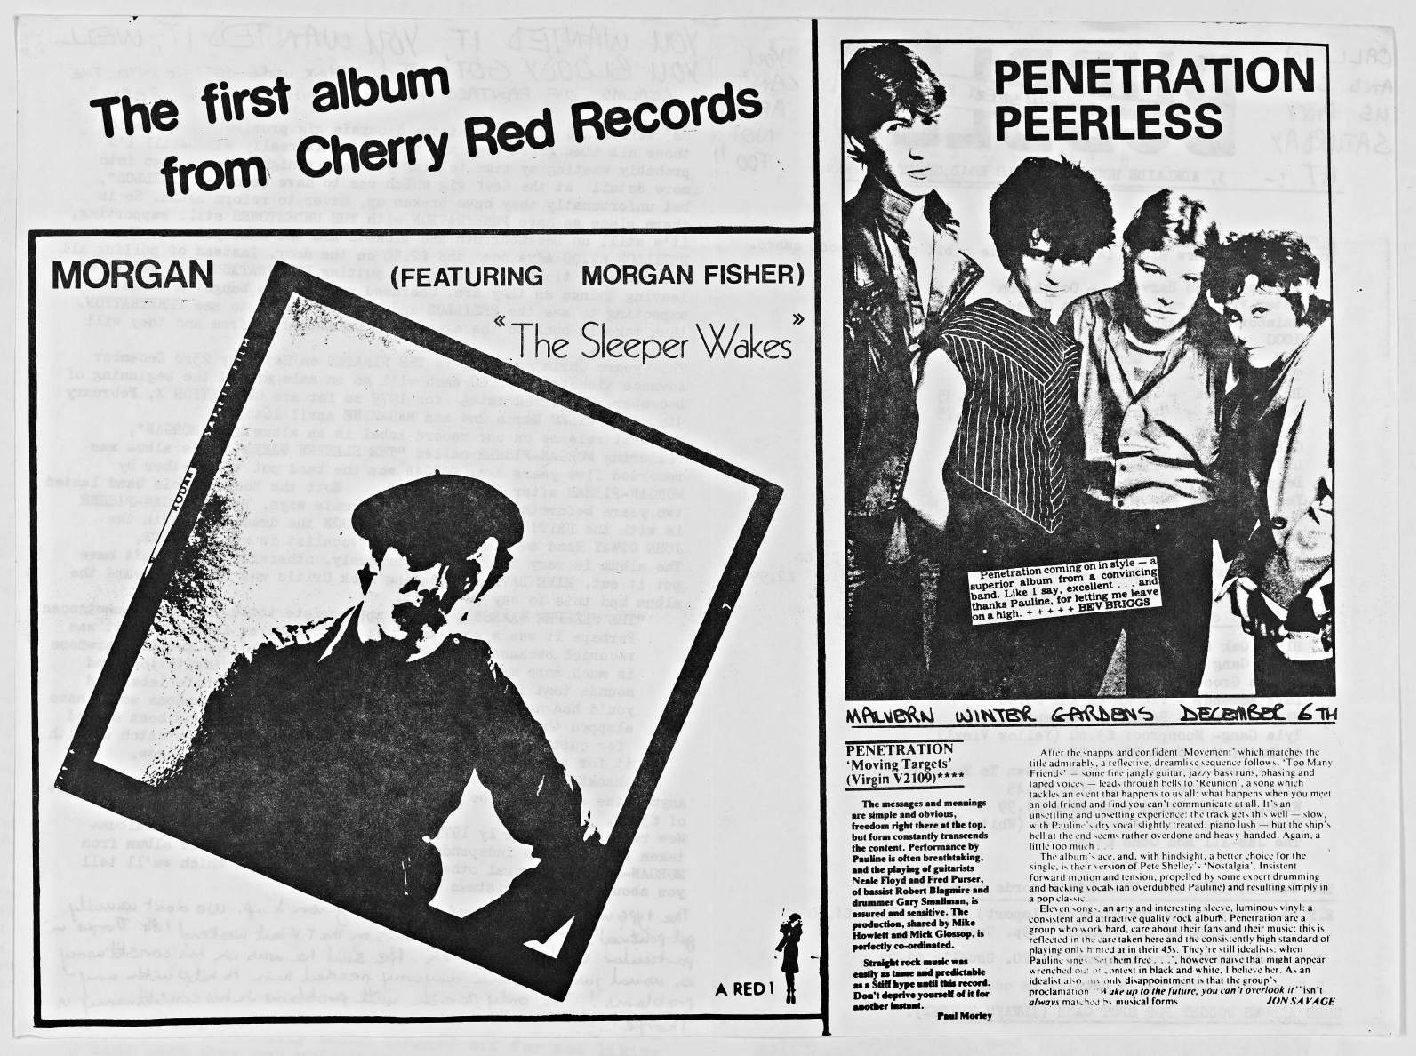 Cherry Red 'fanzine', including advert for Penetration at Malvern Winter Gardens, 6 December 1978